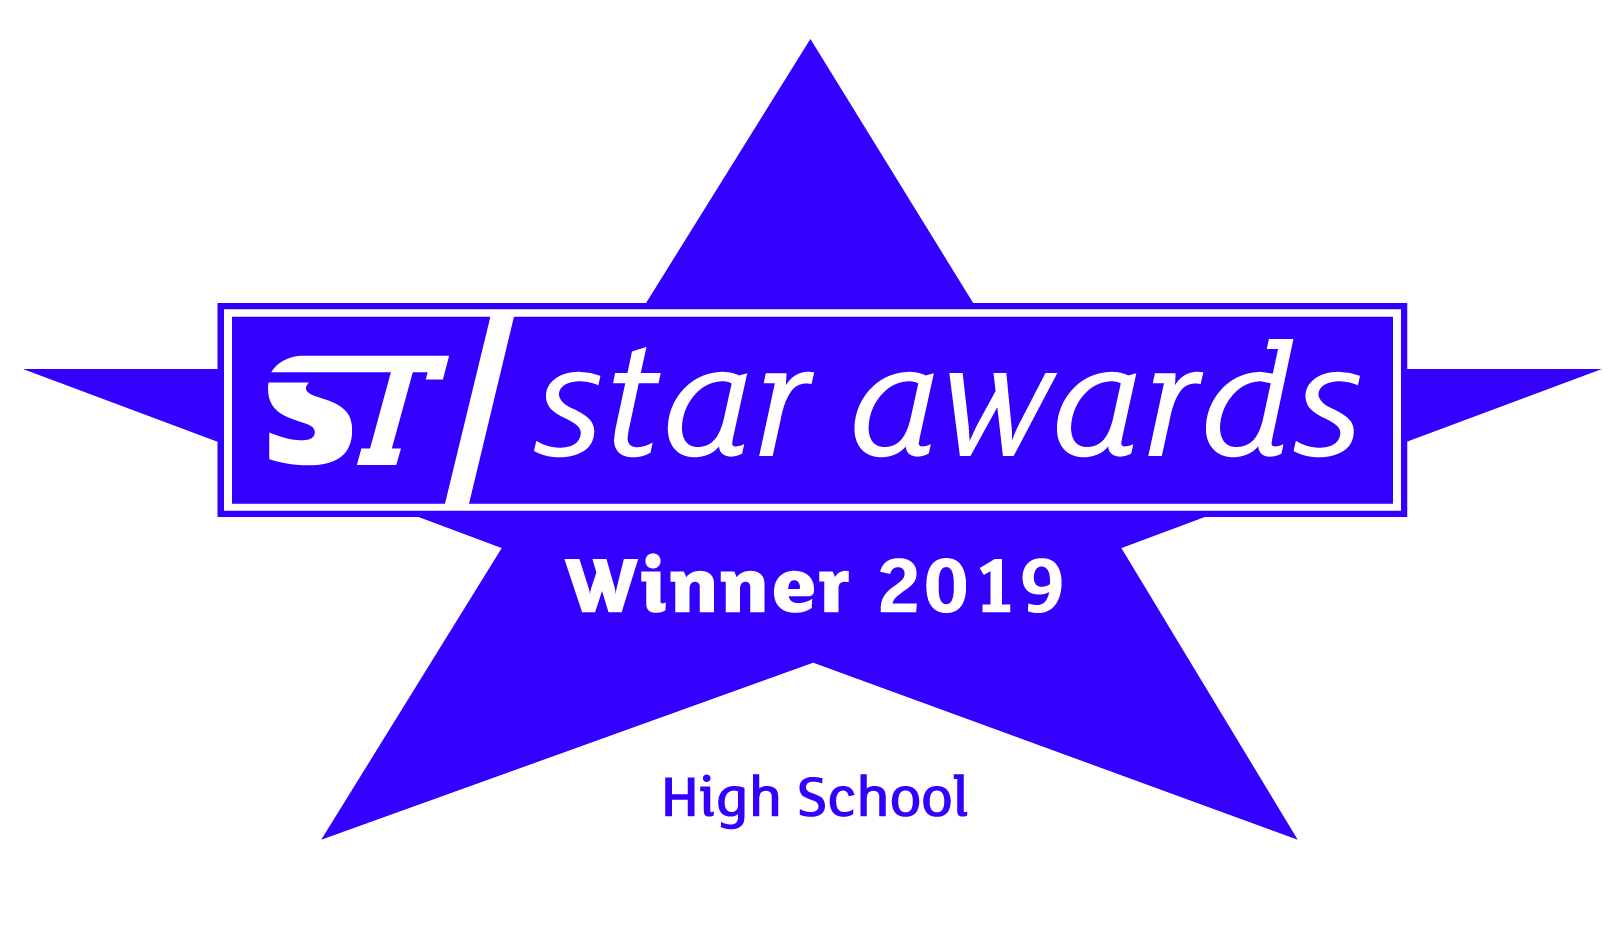 ST Star Awrads Best High school